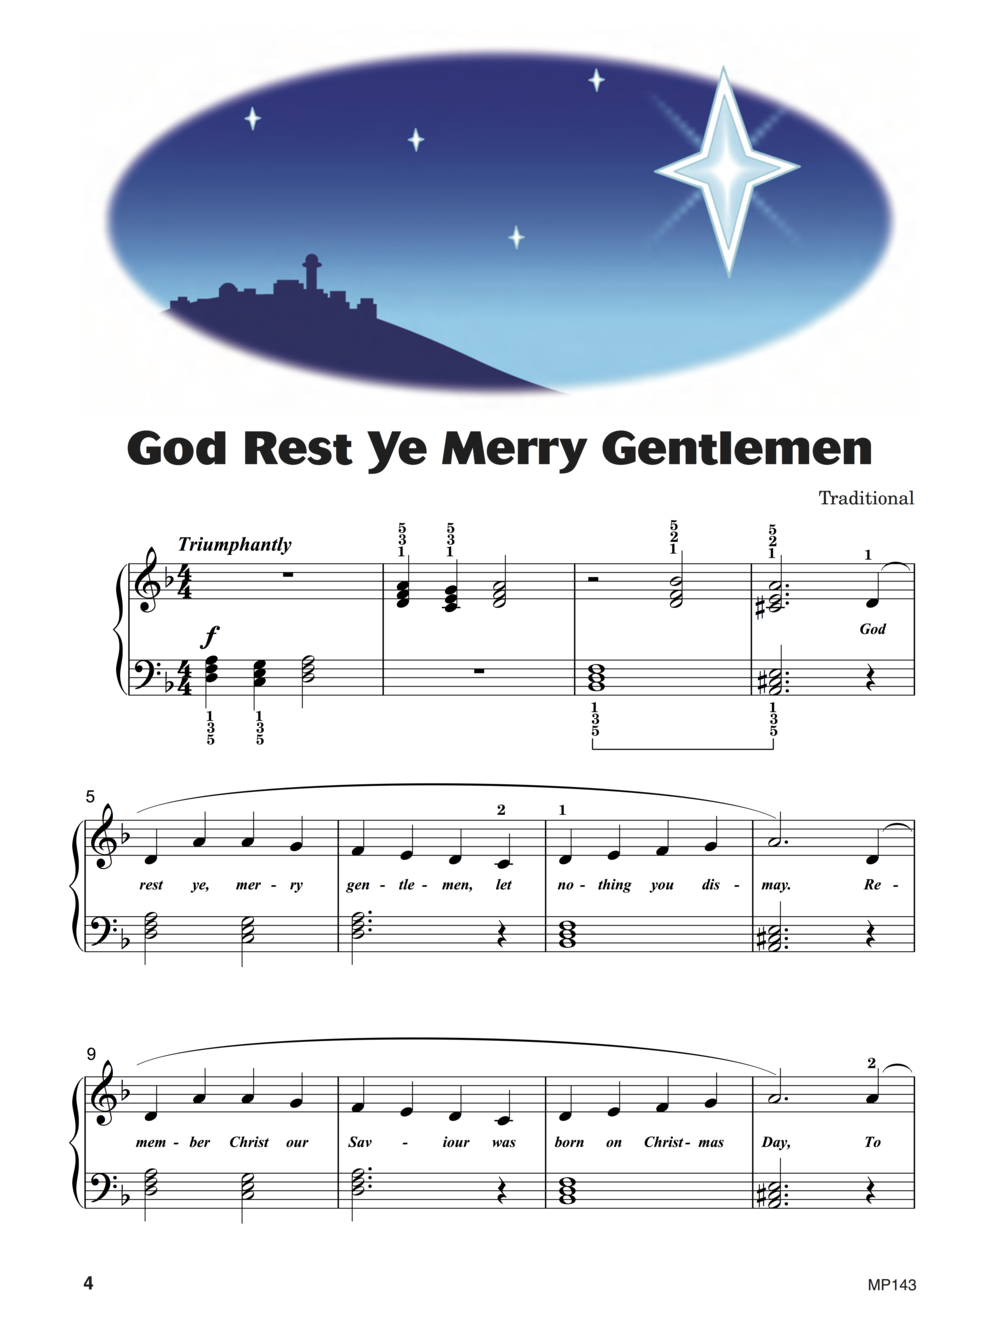 God Rest Ye Merry Gentlemen  from  Keith Snell & Diane Hidy's Level 3 Piano Town Christmas